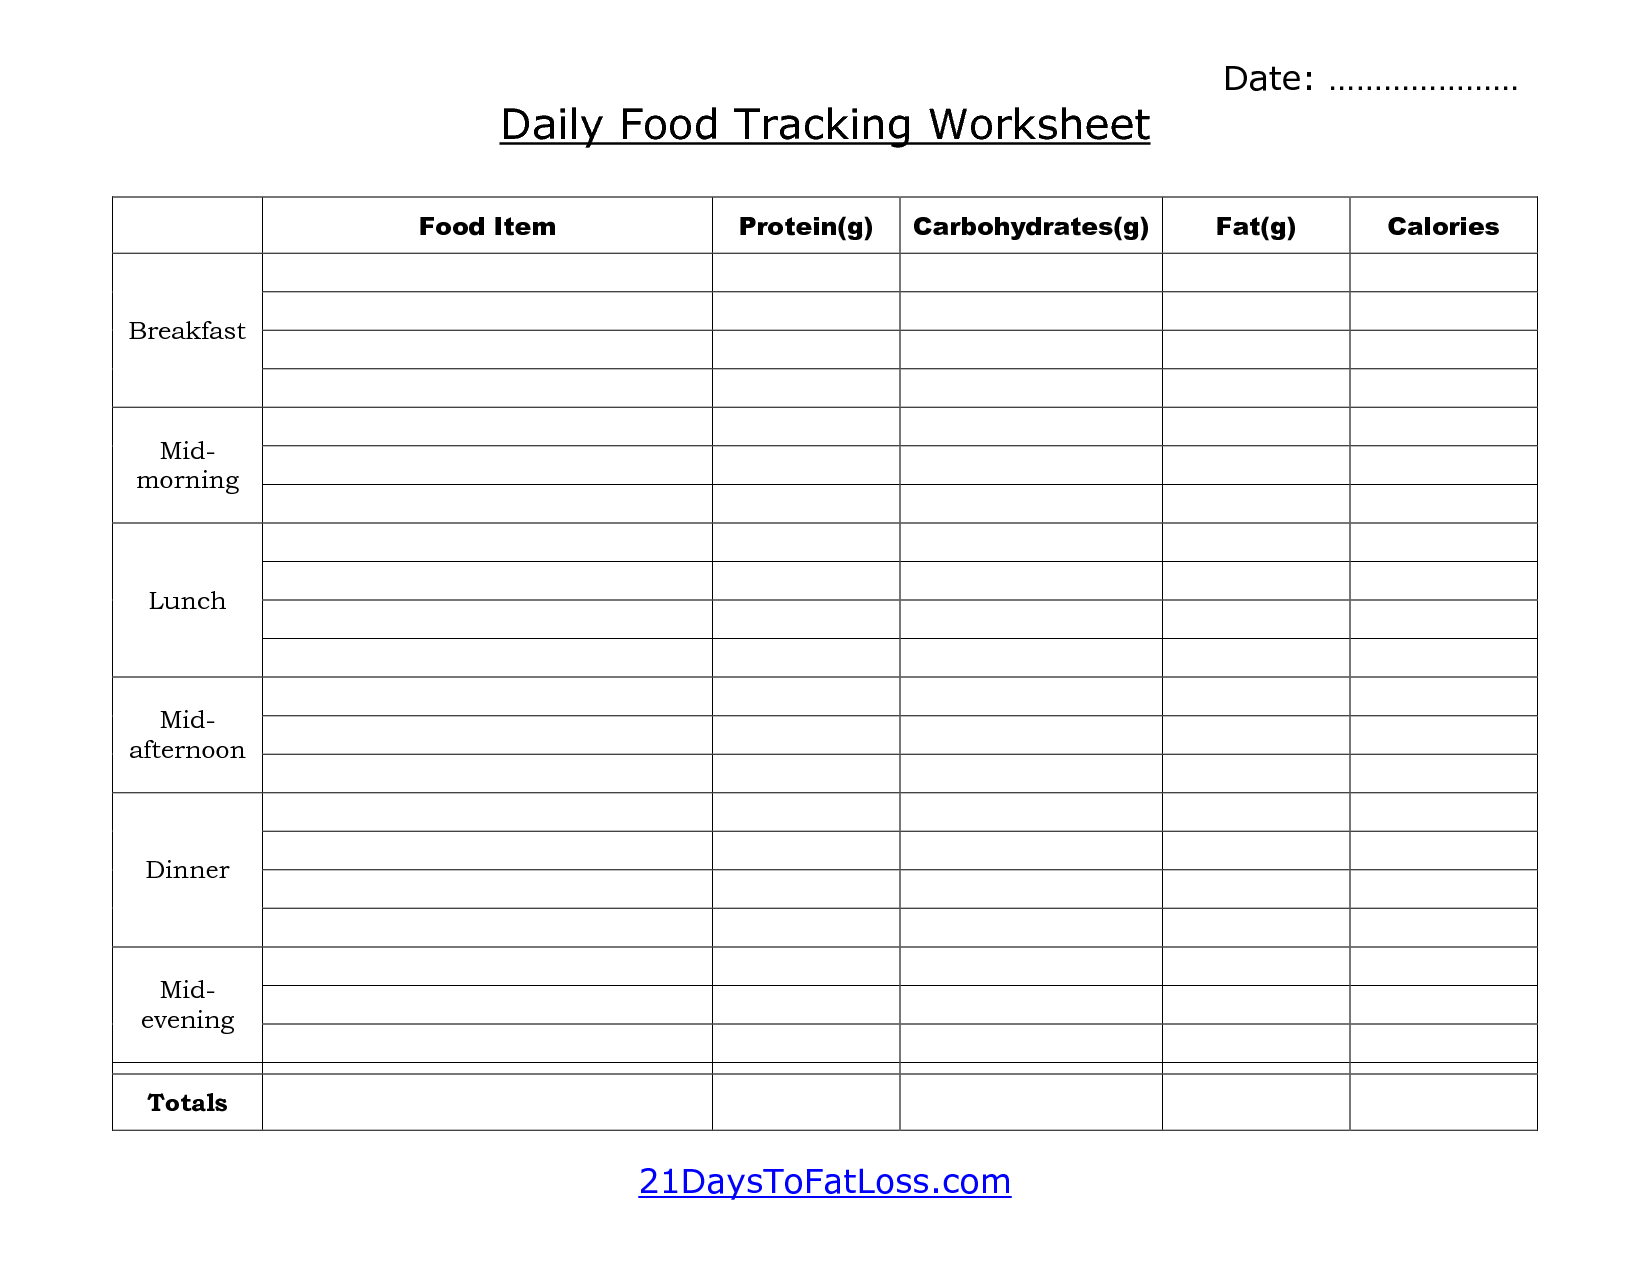 Worksheets Meal Tracking Worksheet free printable blank income statement was designed as an excel spreadsheet that performs auto totaling calculations